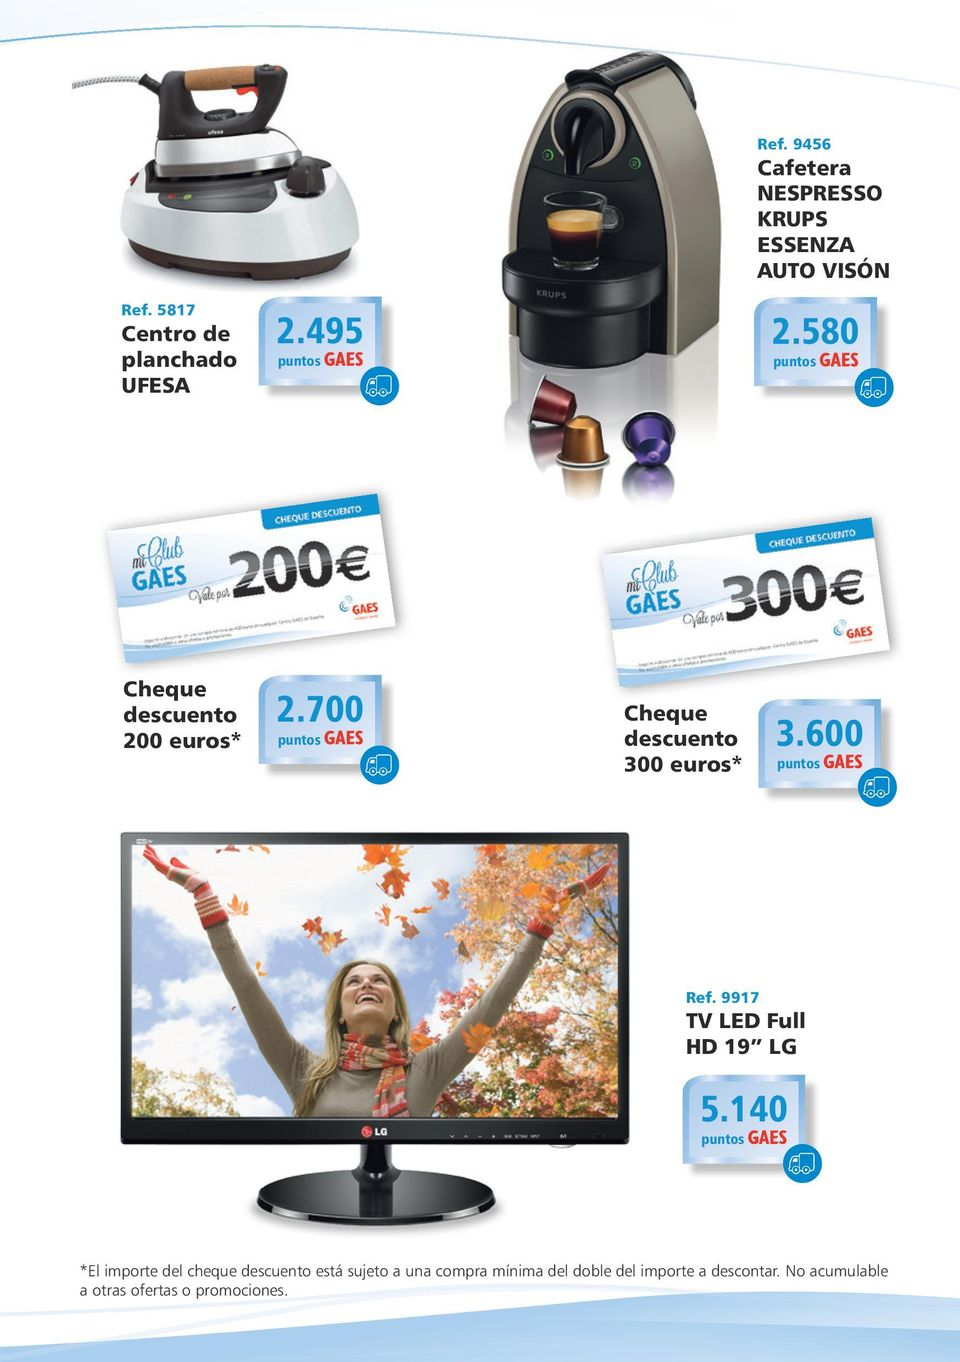 700 Cheque descuento 300 euros* 3.600 Ref. 9917 TV LED Full HD 19 LG 5.